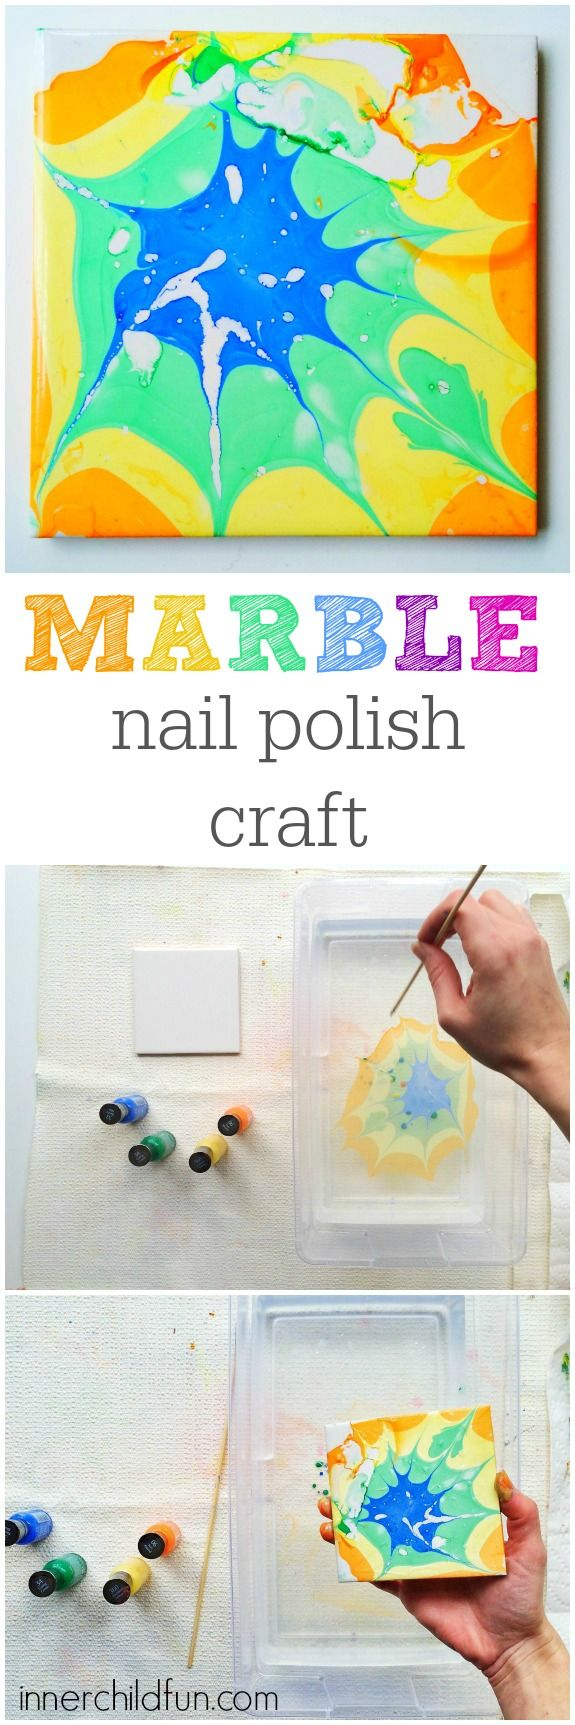 Best crafts for 8 yr old girl - Best 20 7 Year Olds Ideas On Pinterest 8 Year Olds Books For 7 Year Old Boys And 9 Year Olds